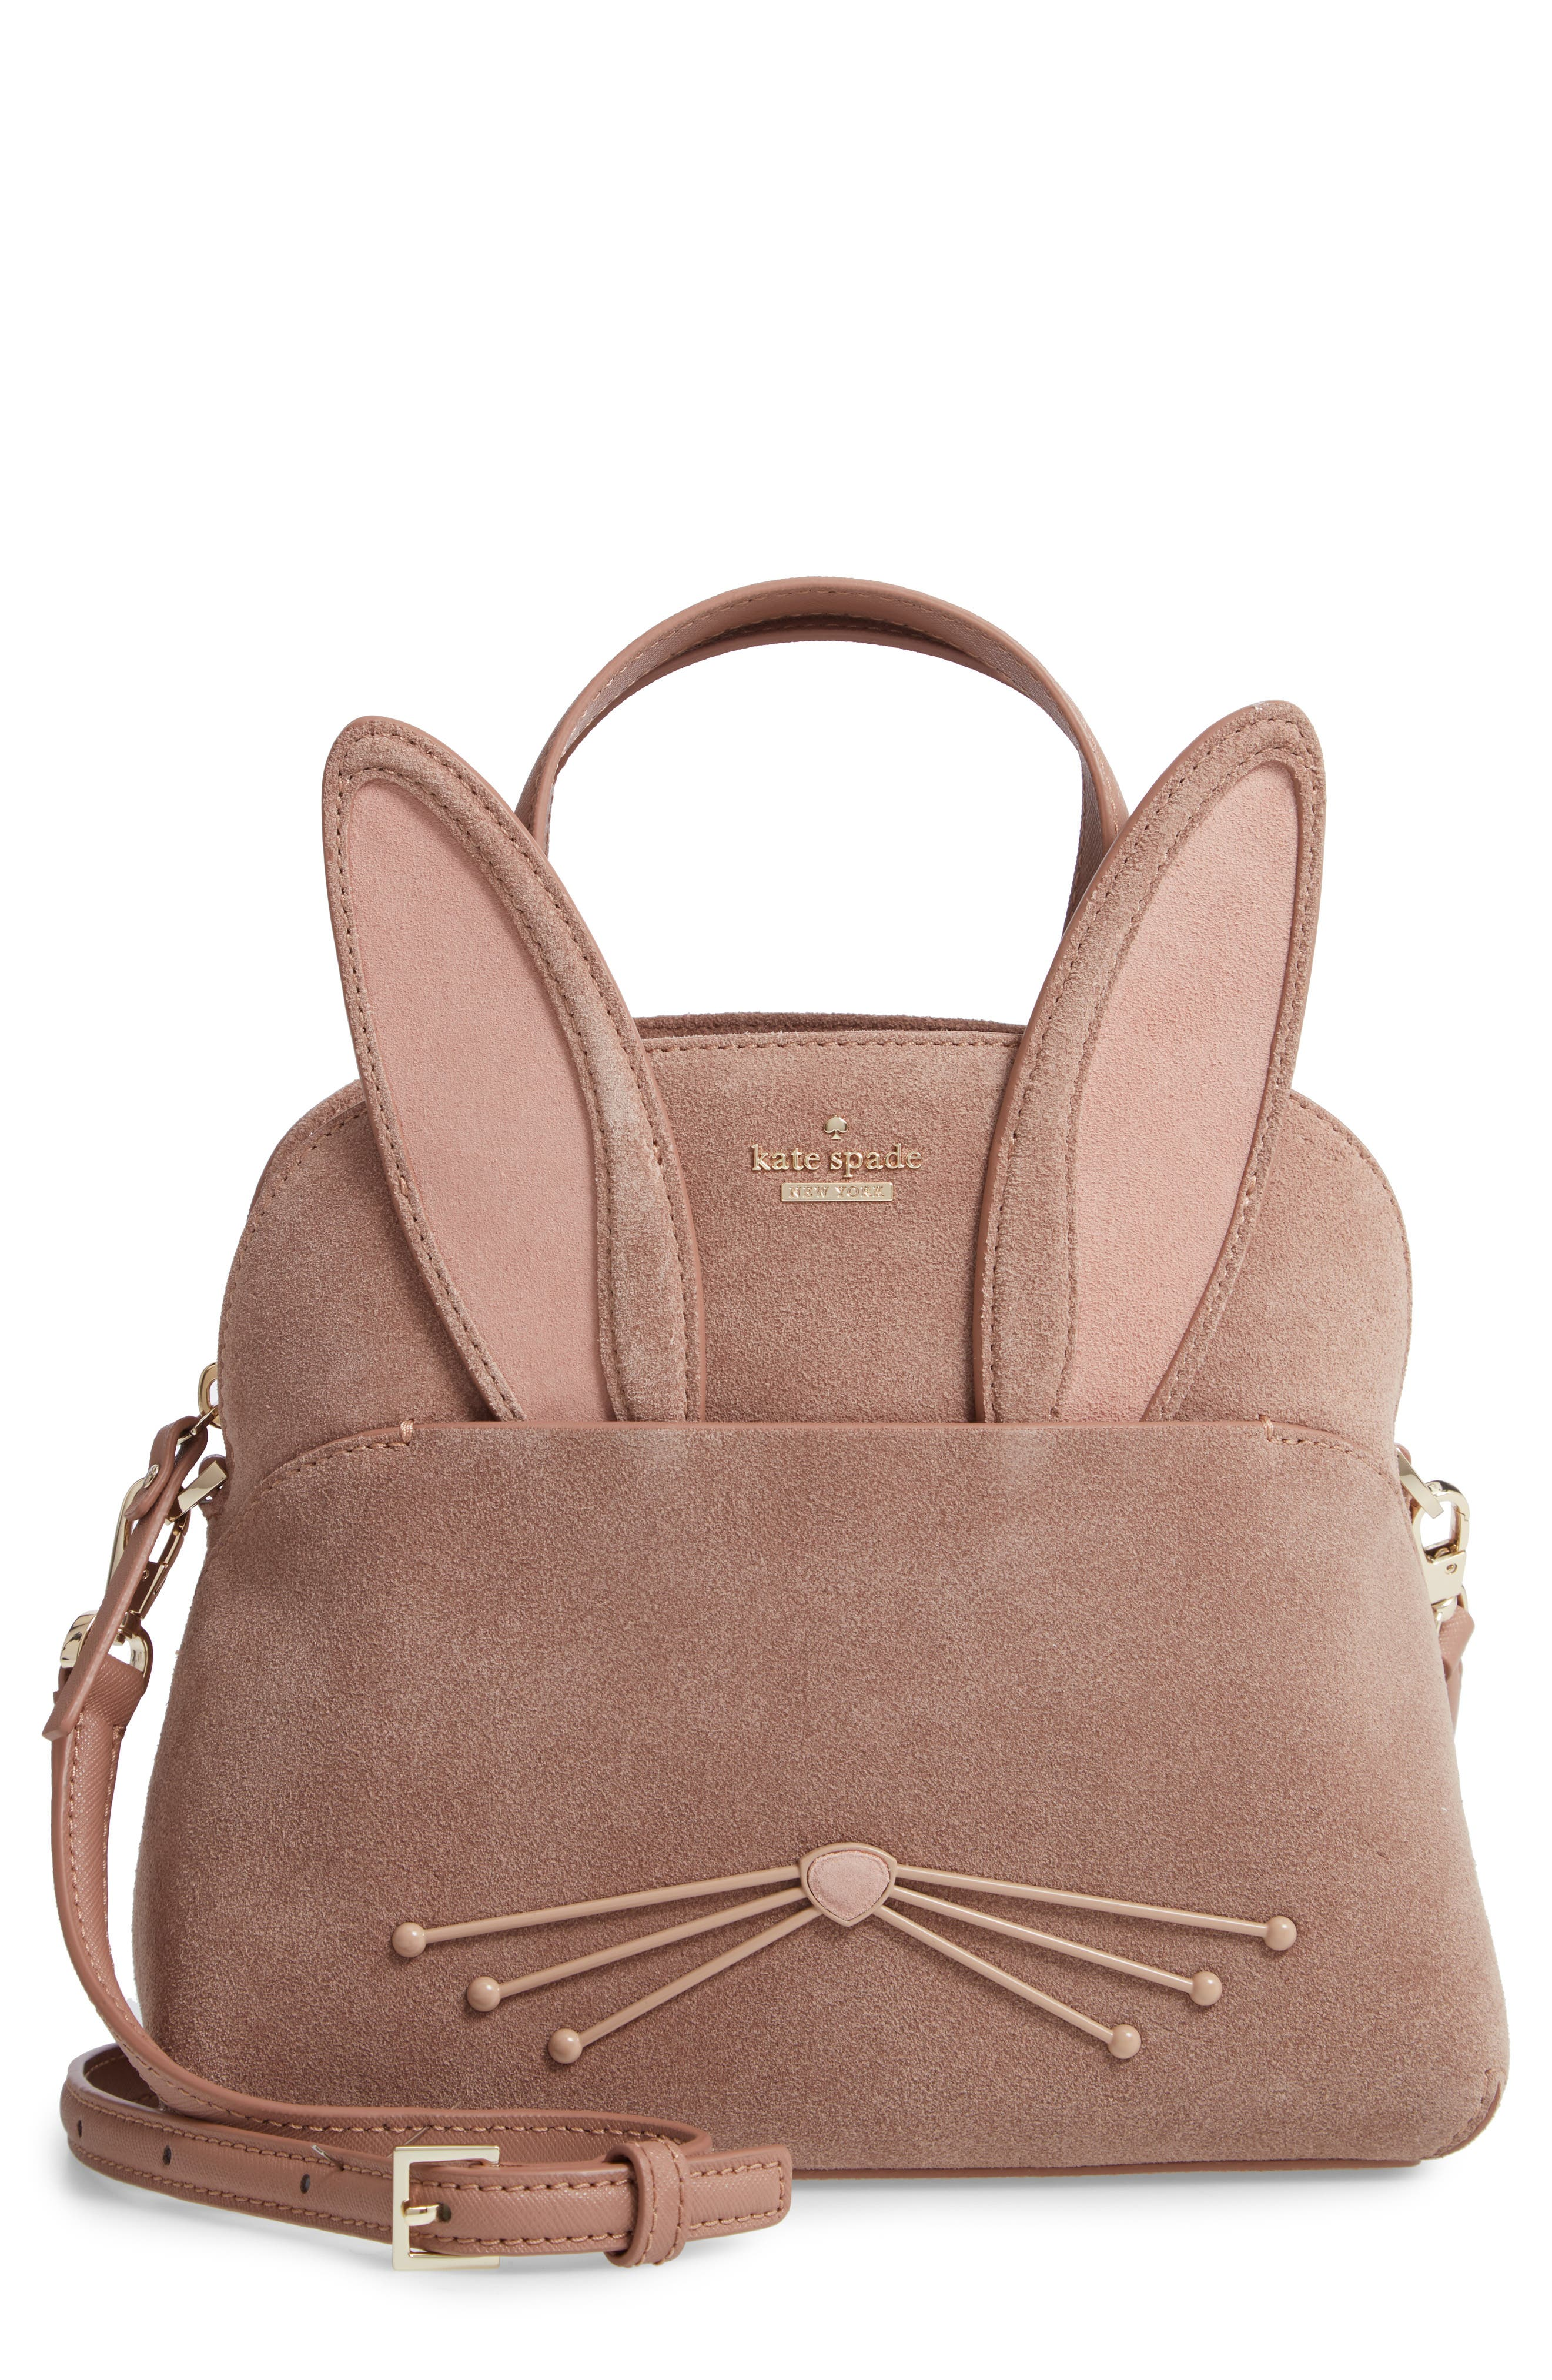 KATE SPADE NEW YORK,                             desert muse rabbit small lotti bag,                             Main thumbnail 1, color,                             200